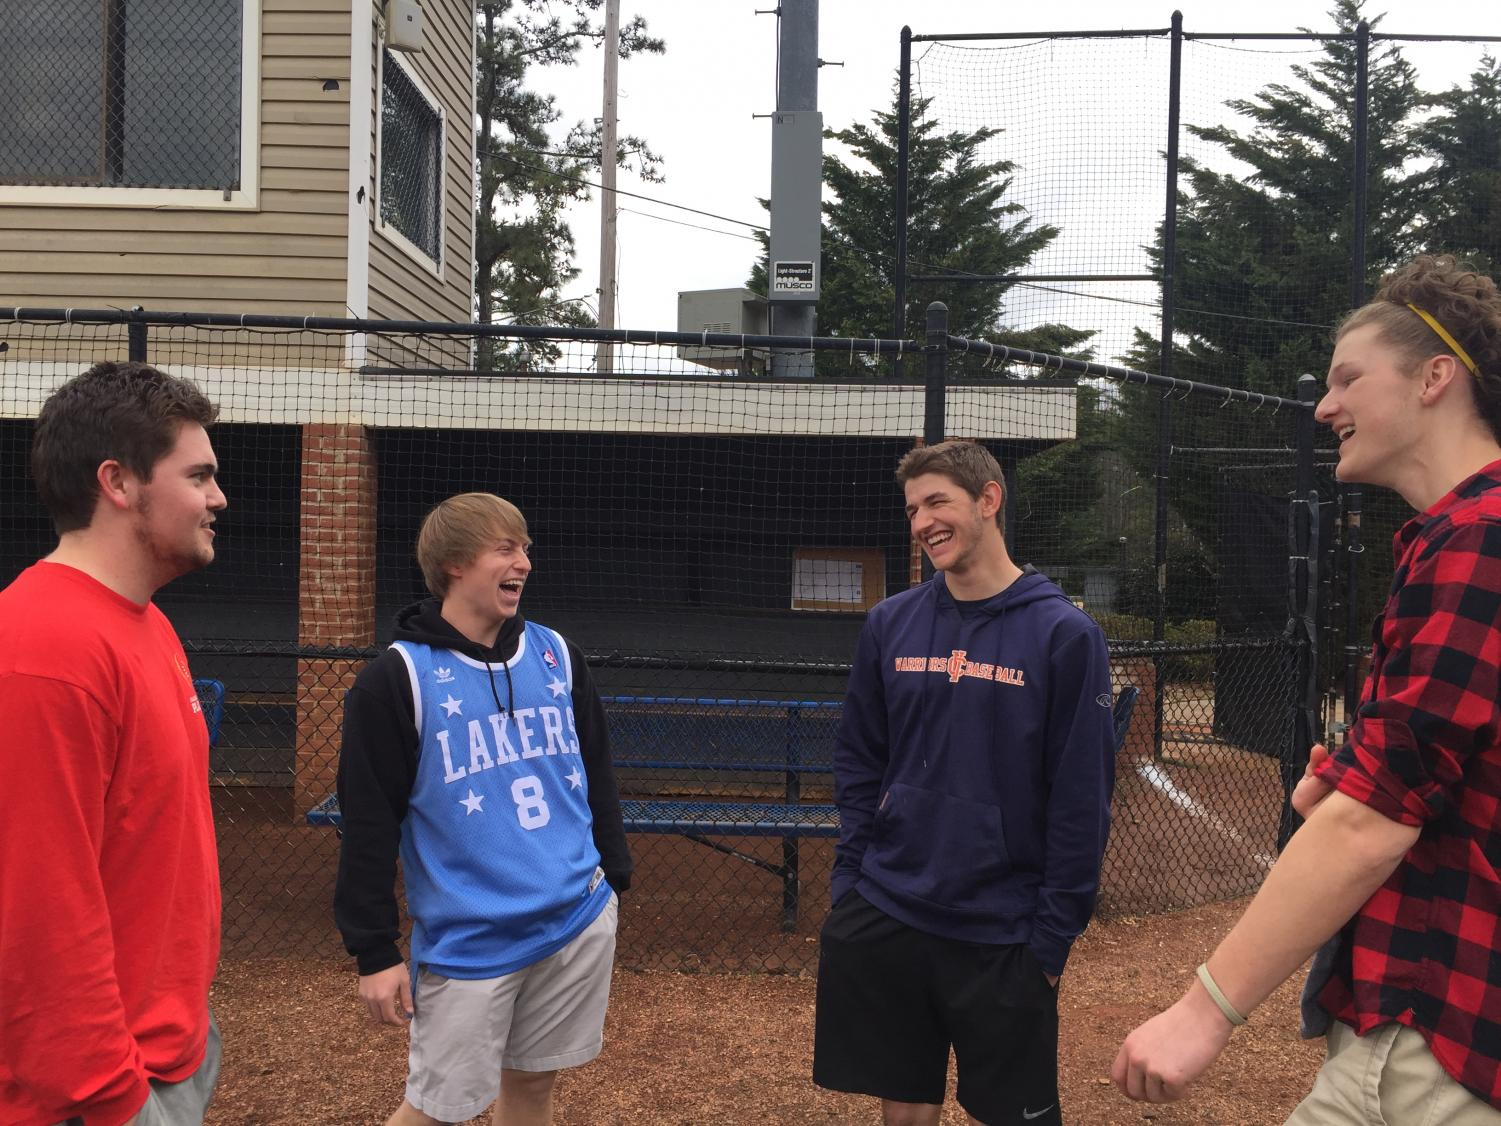 """Christian Tetrault, Zack Lewis, Matthew Terrill, and Gavin Rose (pictured left to right) enjoy some laughs before suiting up for their daily practice. """"Christian always makes sure everyone has a smile on their face,"""" Rose said."""